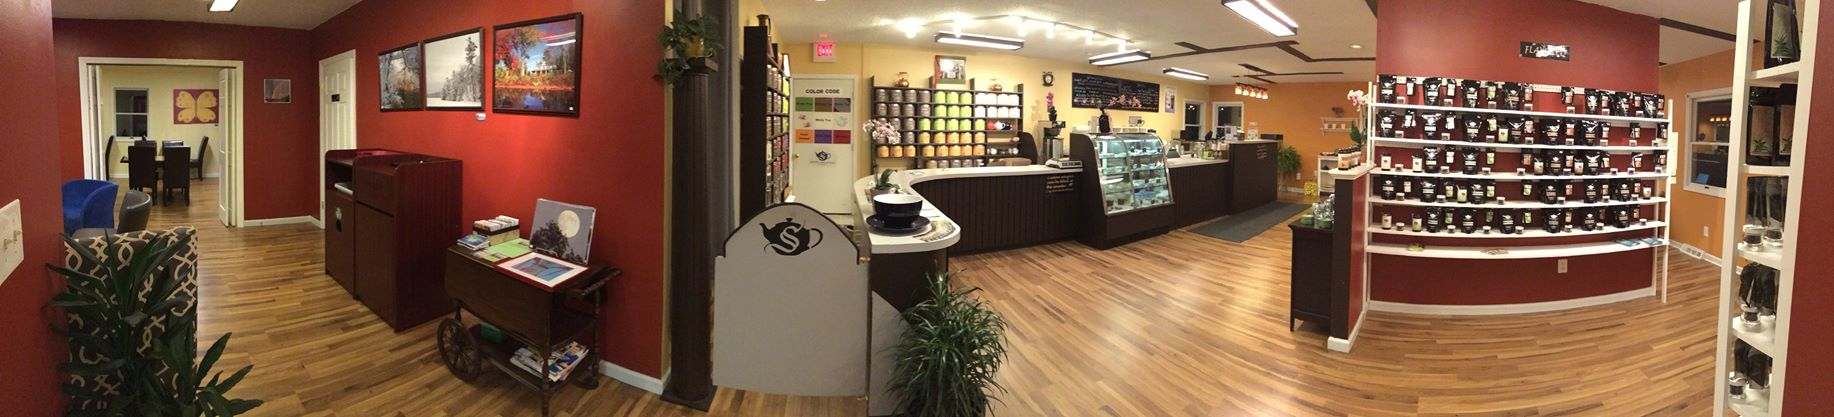 Albany Tea Shop Panorama